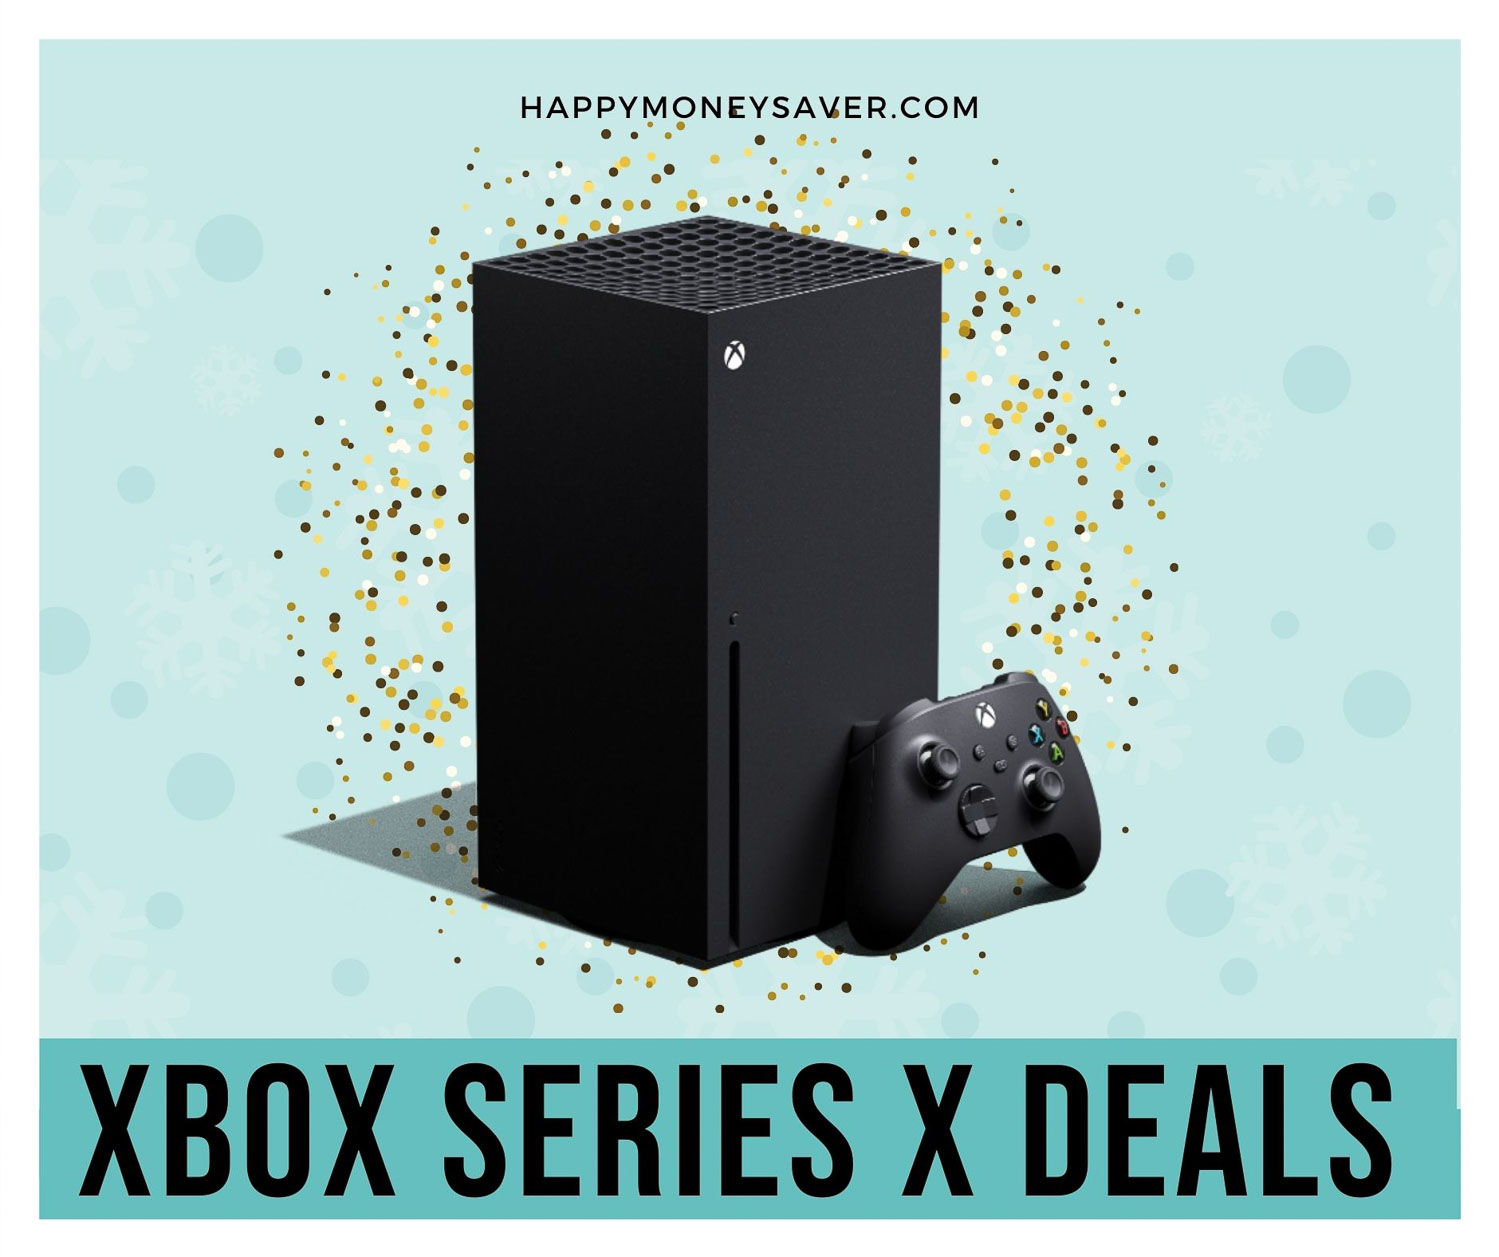 Xbox Series X Black Friday deals 2020 graphic with the new series x on a blue background with confetti behind it.